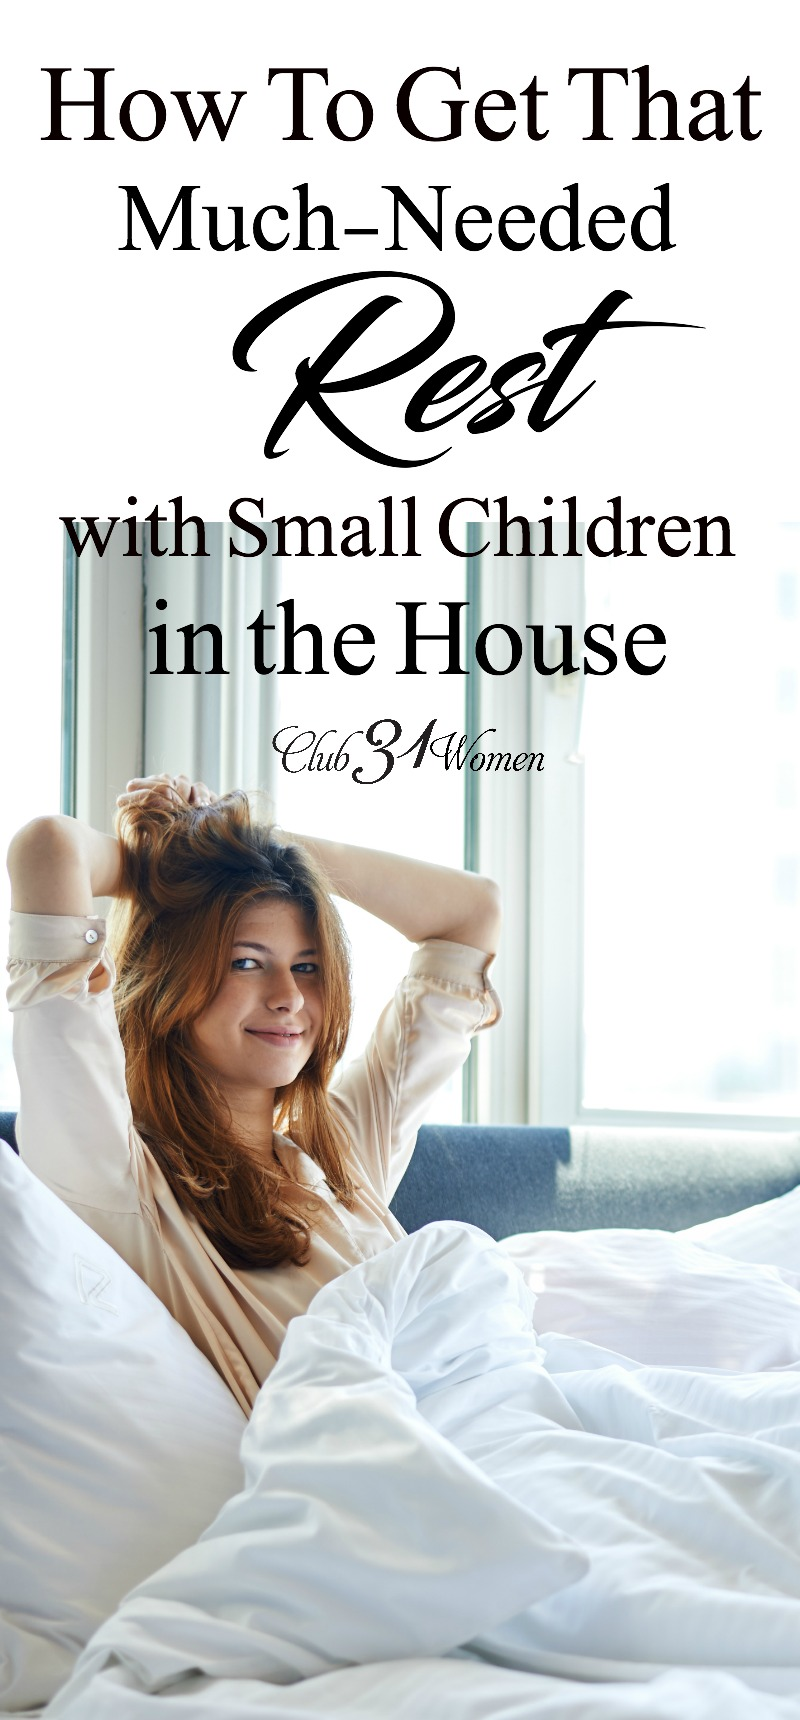 When you have small children in the house, how do you find time to rest? Learn why it's crucial to find rest as a mom and how to achieve it in the busyness! via @Club31Women